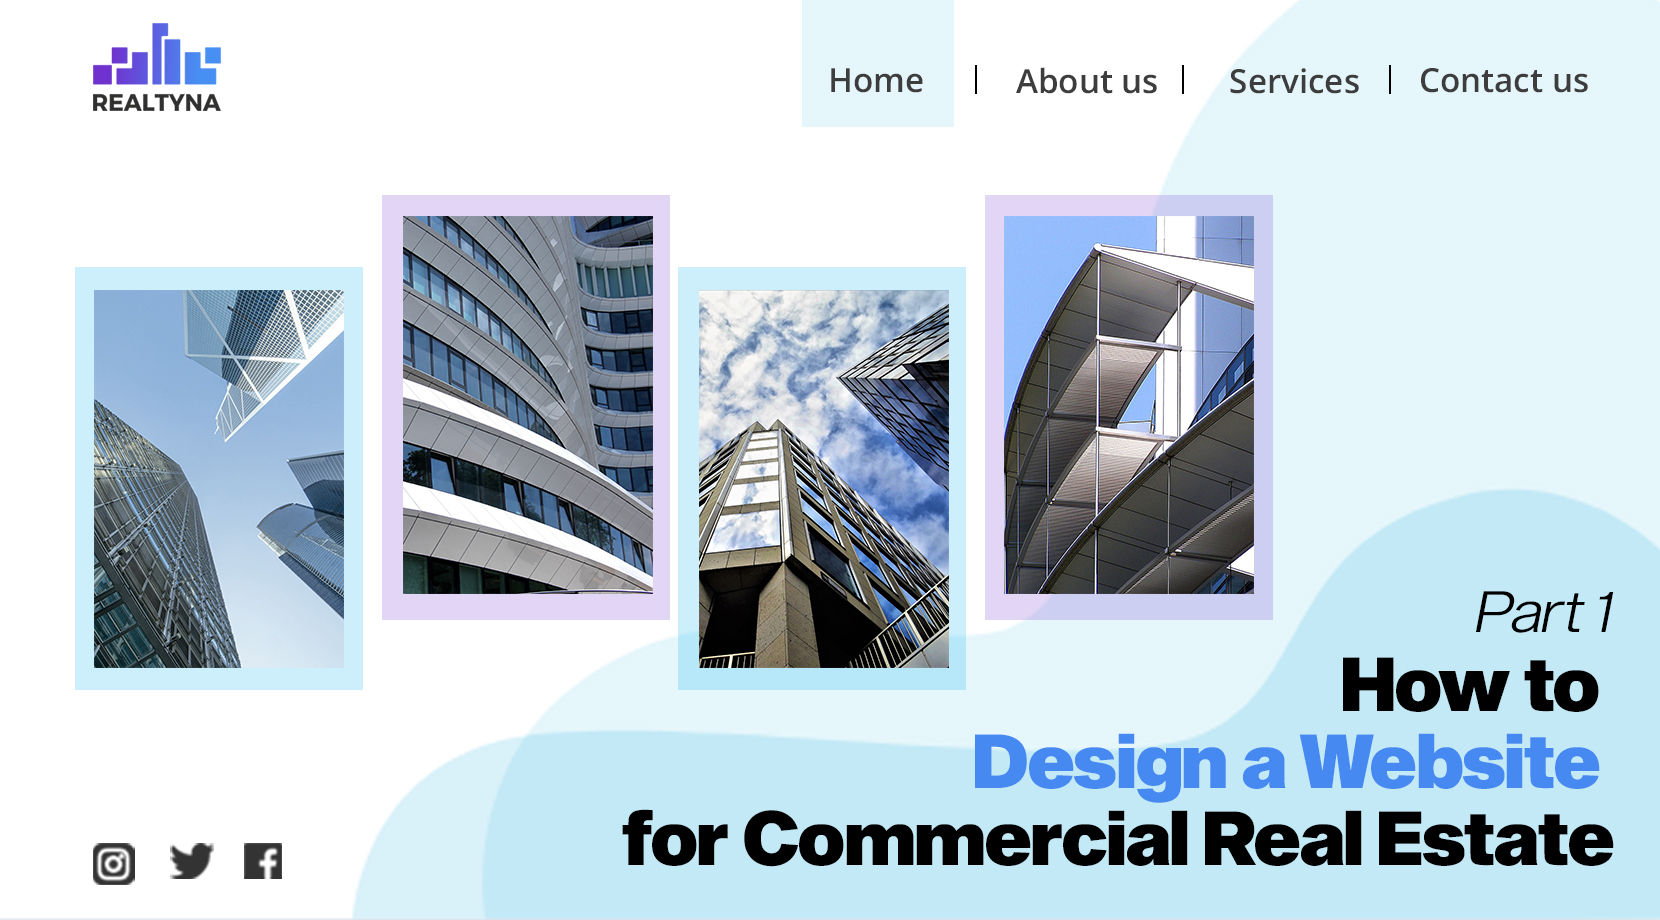 How to Design a Website for Commercial Real Estate: Part 1